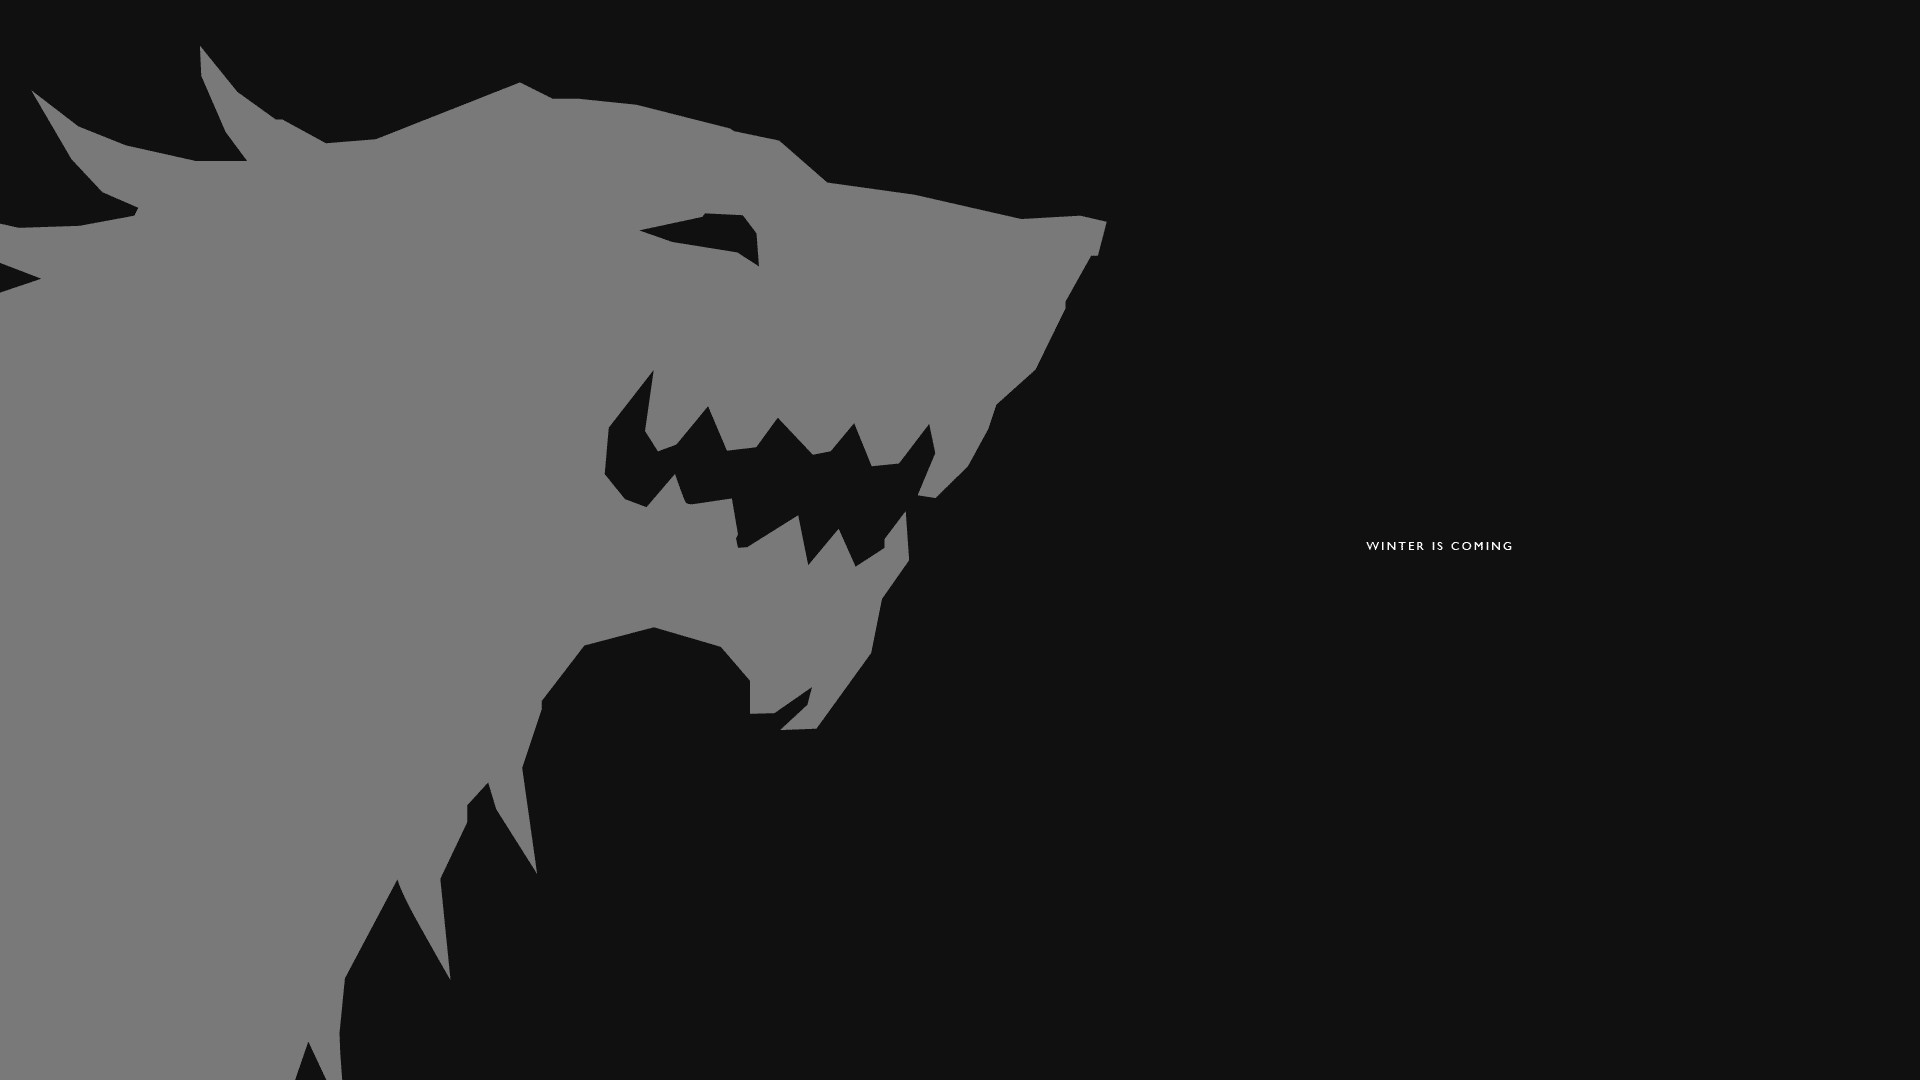 1920x1080 Download free winter is coming wallpapers for your mobile phone